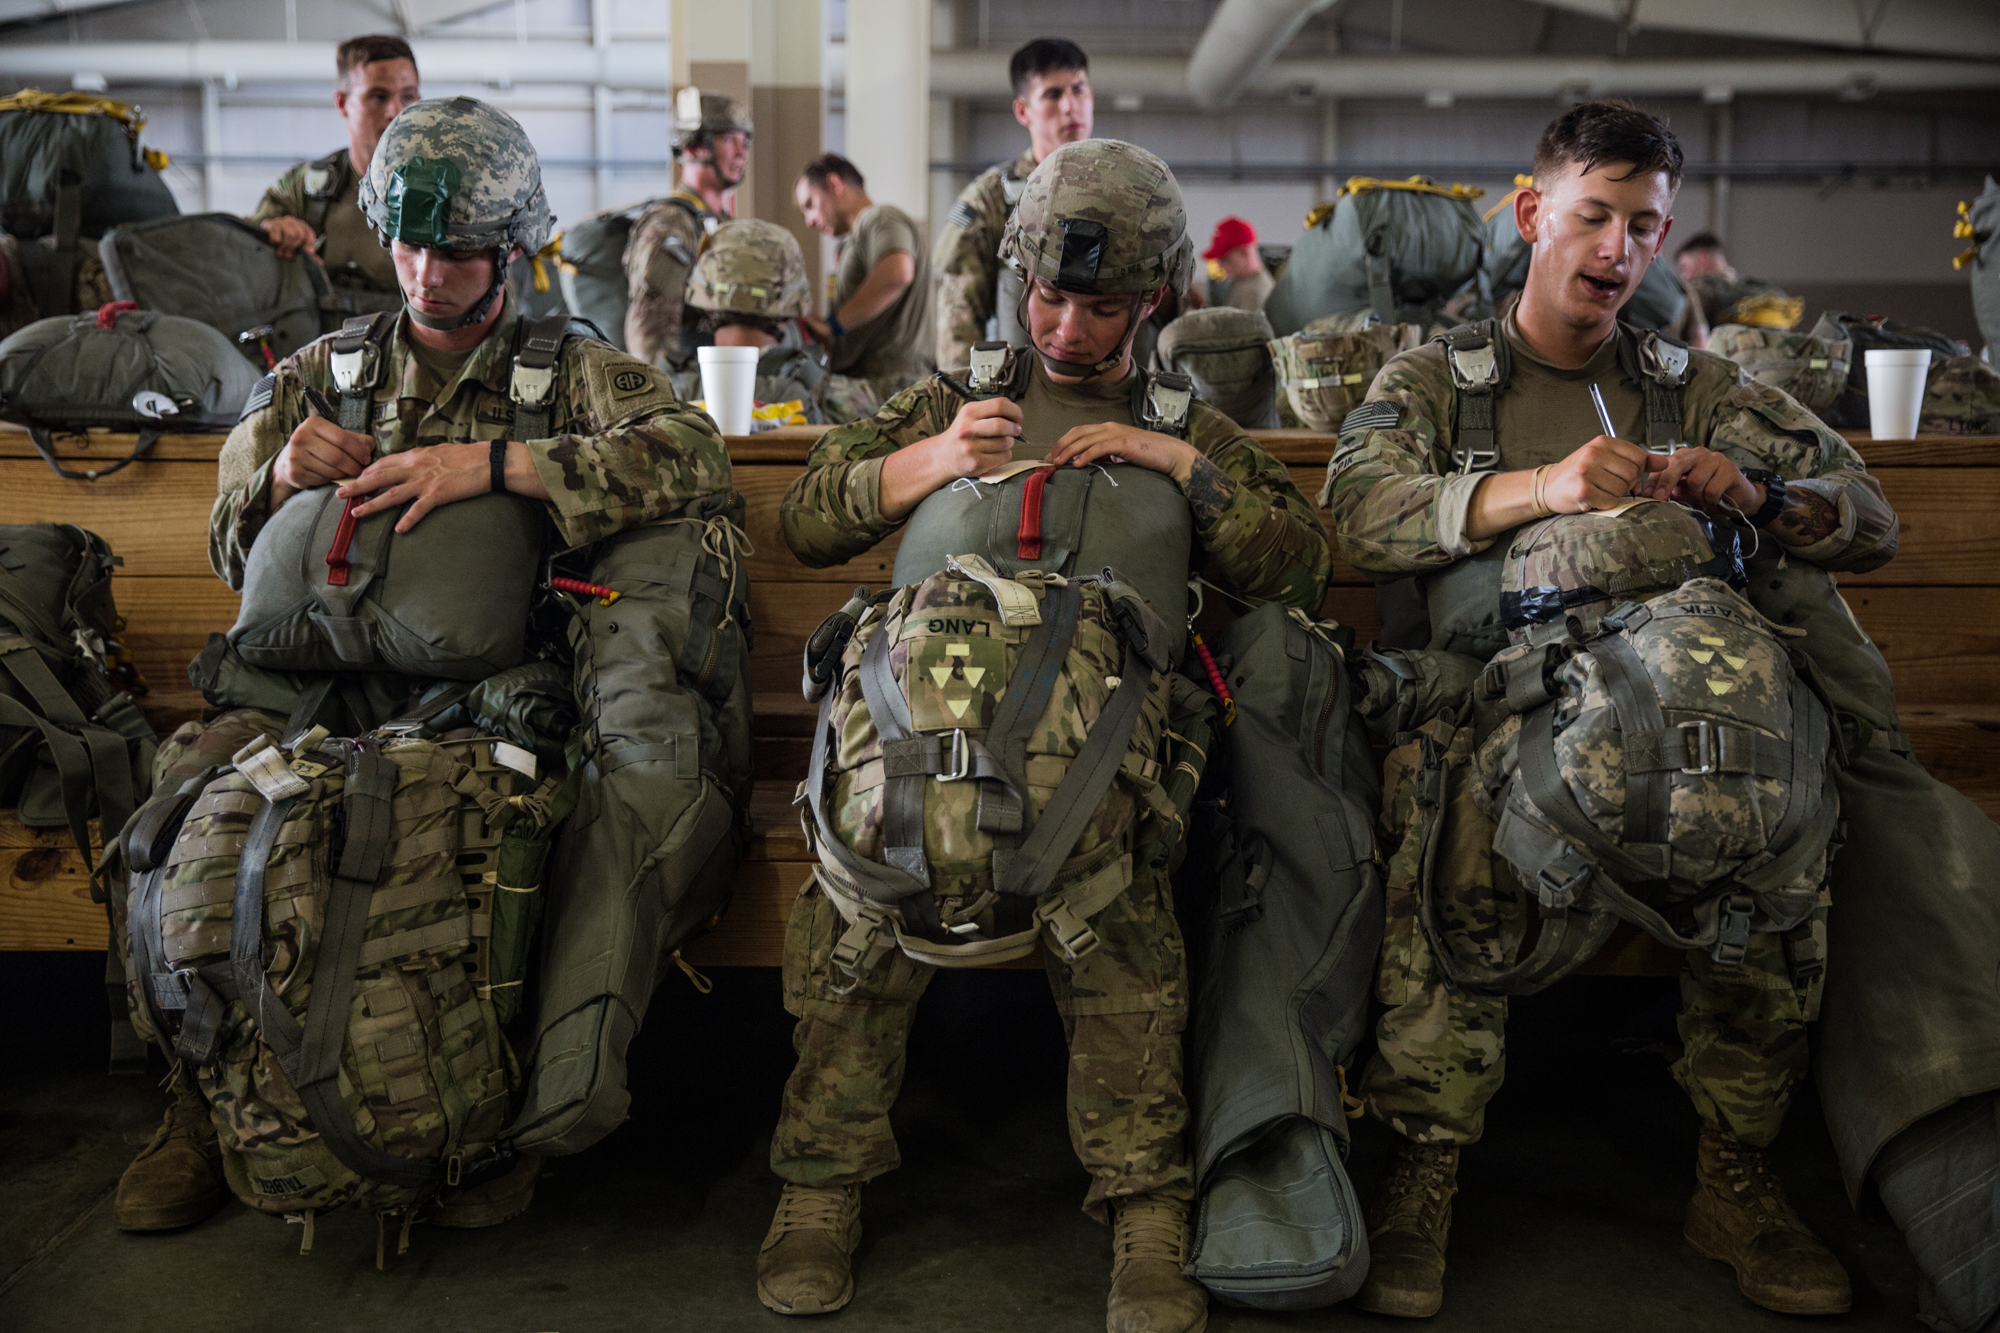 Paratroopers Talbert, Lang and Capik of the 82nd Airborne Division write their name, rank, and unit on name cards before an upcoming training jump at Fort Bragg, N.C. on July 26, 2017.